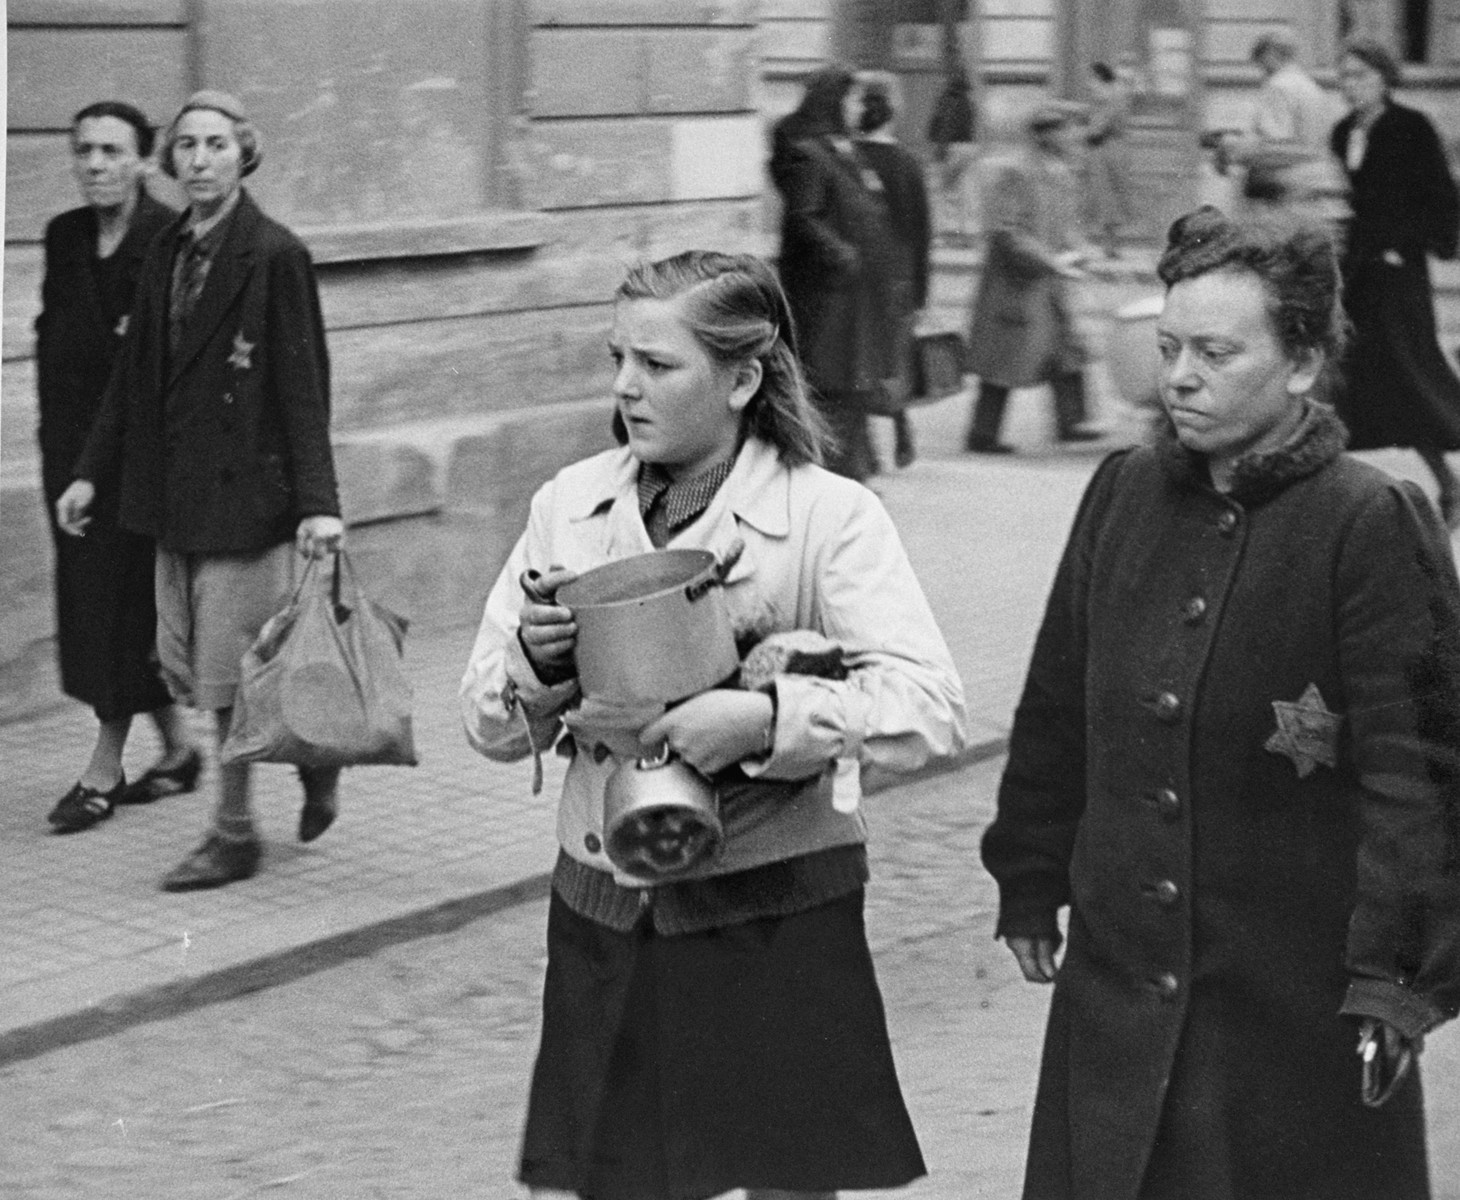 A teenage girl carries two small pots along a street in Theresienstadt.  Some of the Jews pictured appear to be new arrivals. [oversized photo]